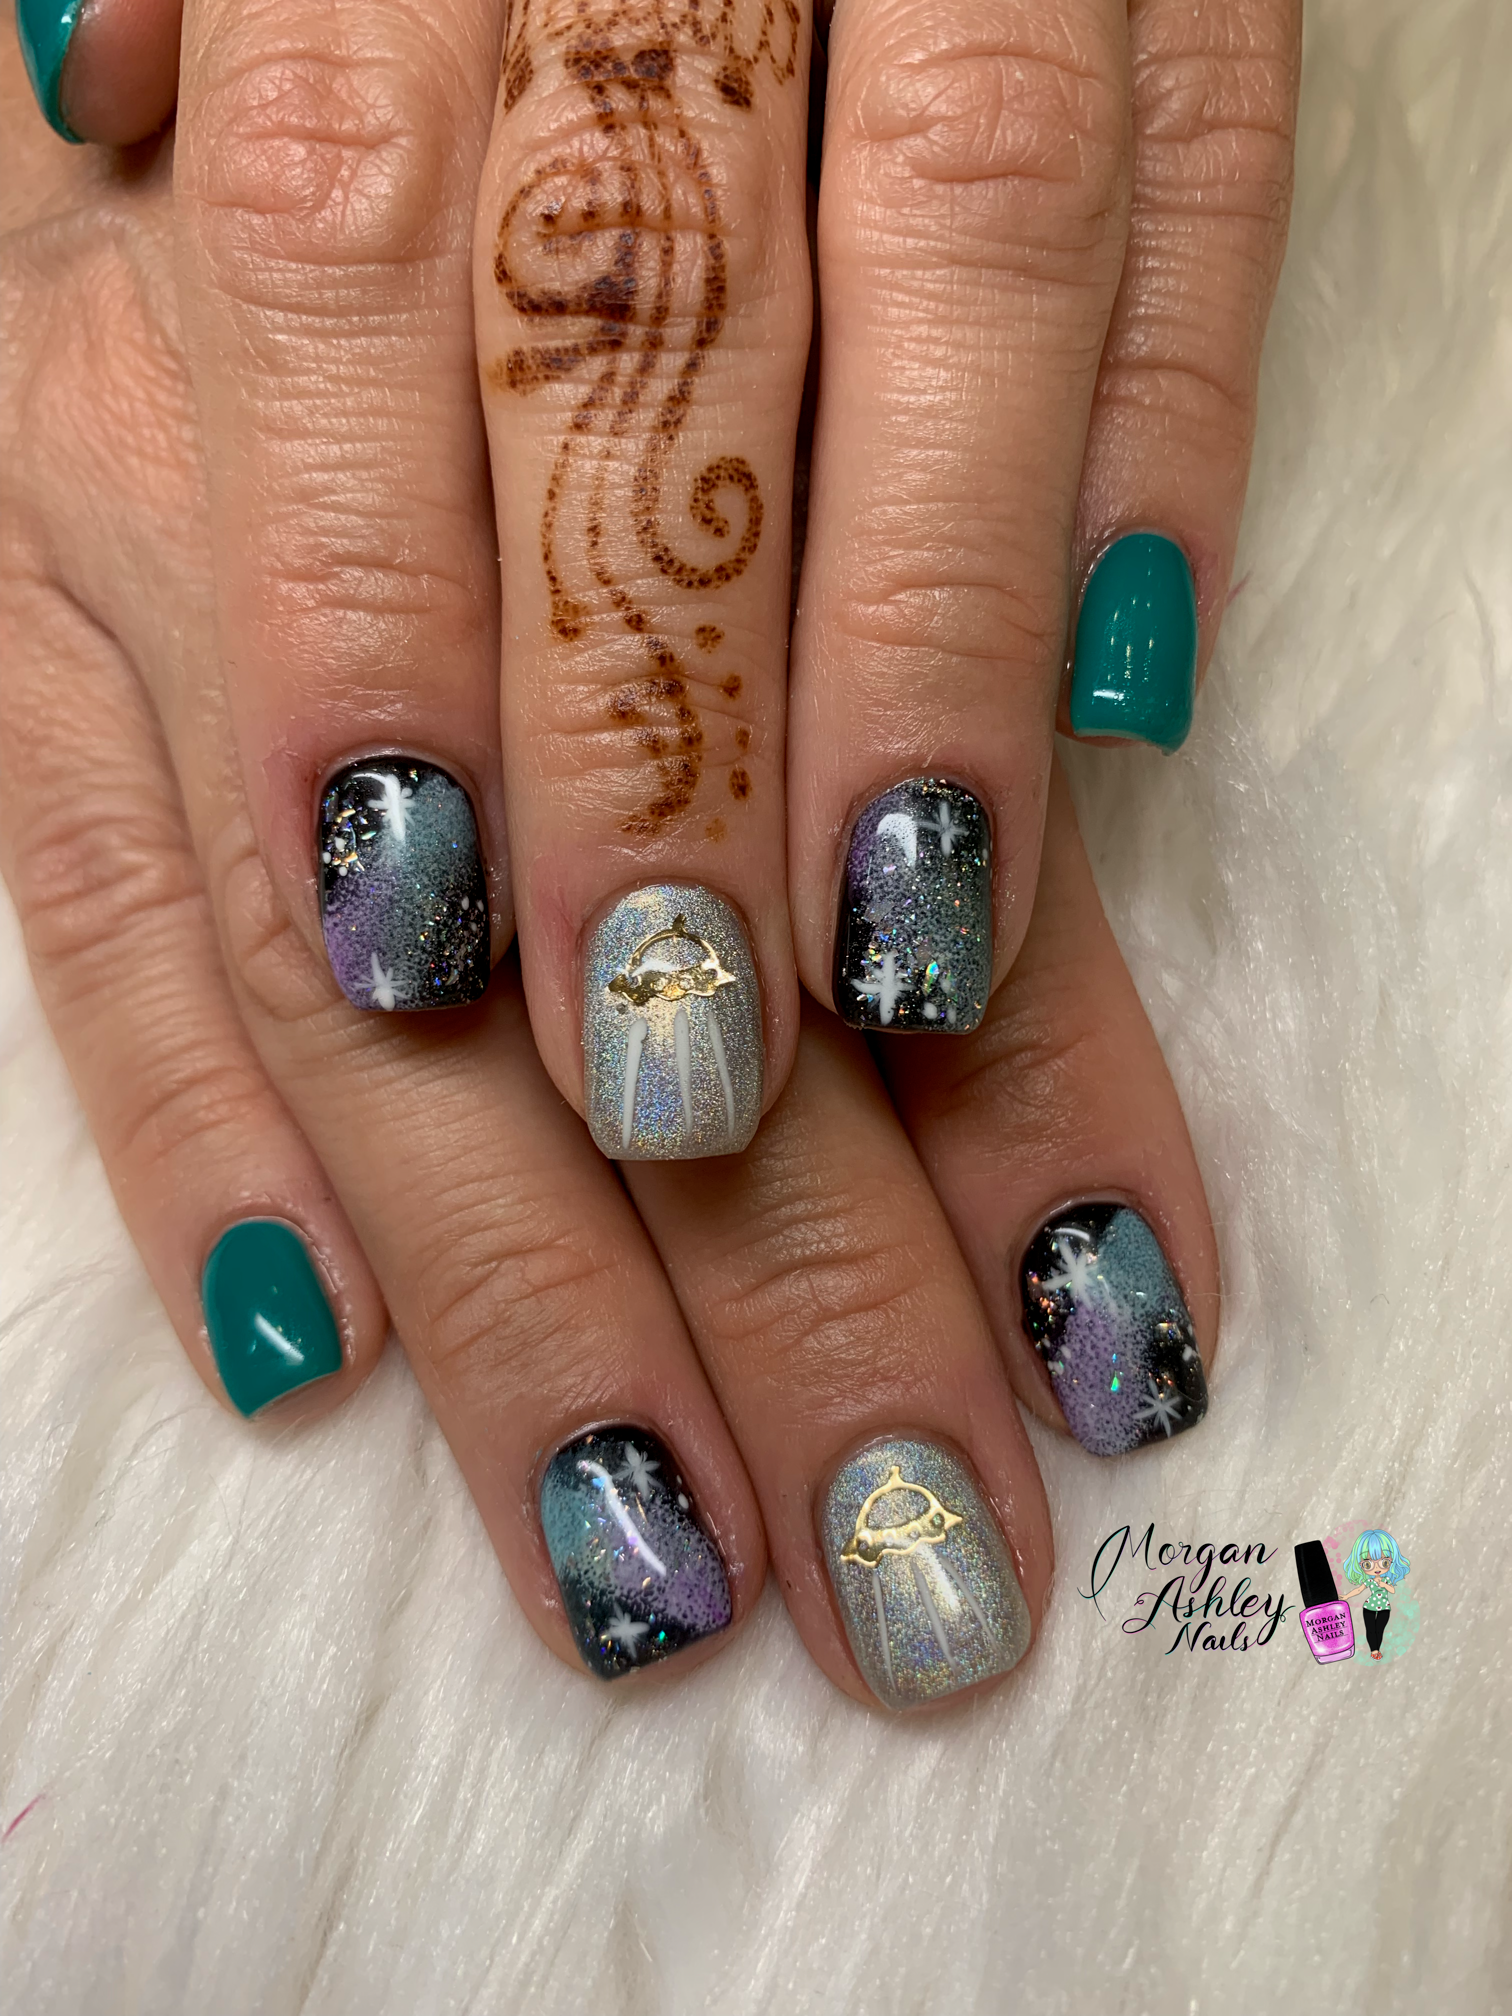 Day 241: Space Nail Art